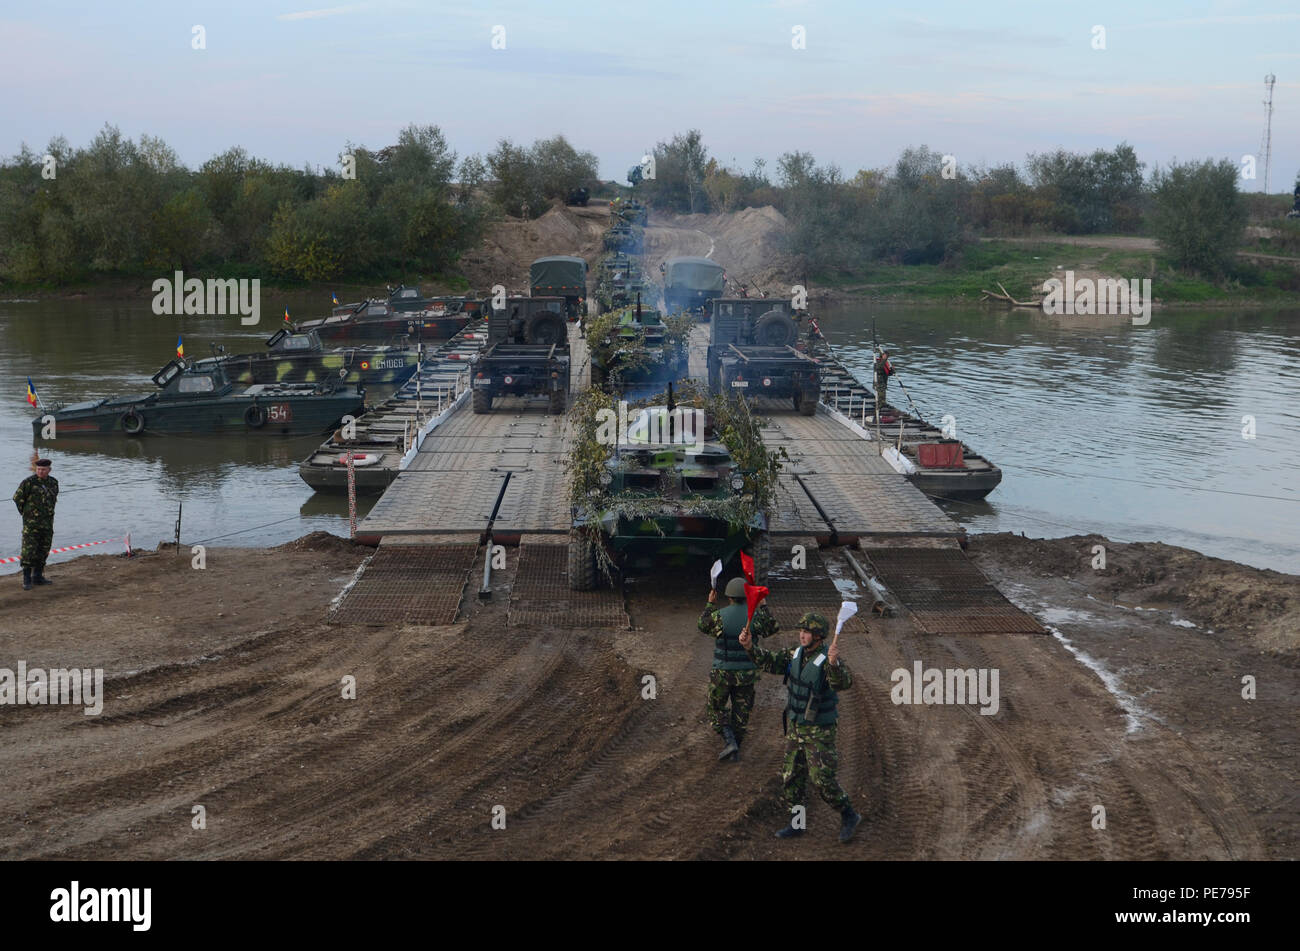 Romanian Soldiers direct traffic as U.S. military vehicles cross the three-lane floating bridge during Exercise Dragoon Crossing – Romania near Arad, Romania, Oct. 24-26, 2015. Dragoon Crossing – Romania is a strengthening of NATO's persistent presence in the region in support of Operation Atlantic Resolve.  (U.S. Army photo by Staff Sgt. Steven M. Colvin/10th Press Camp Headquarters) - Stock Image